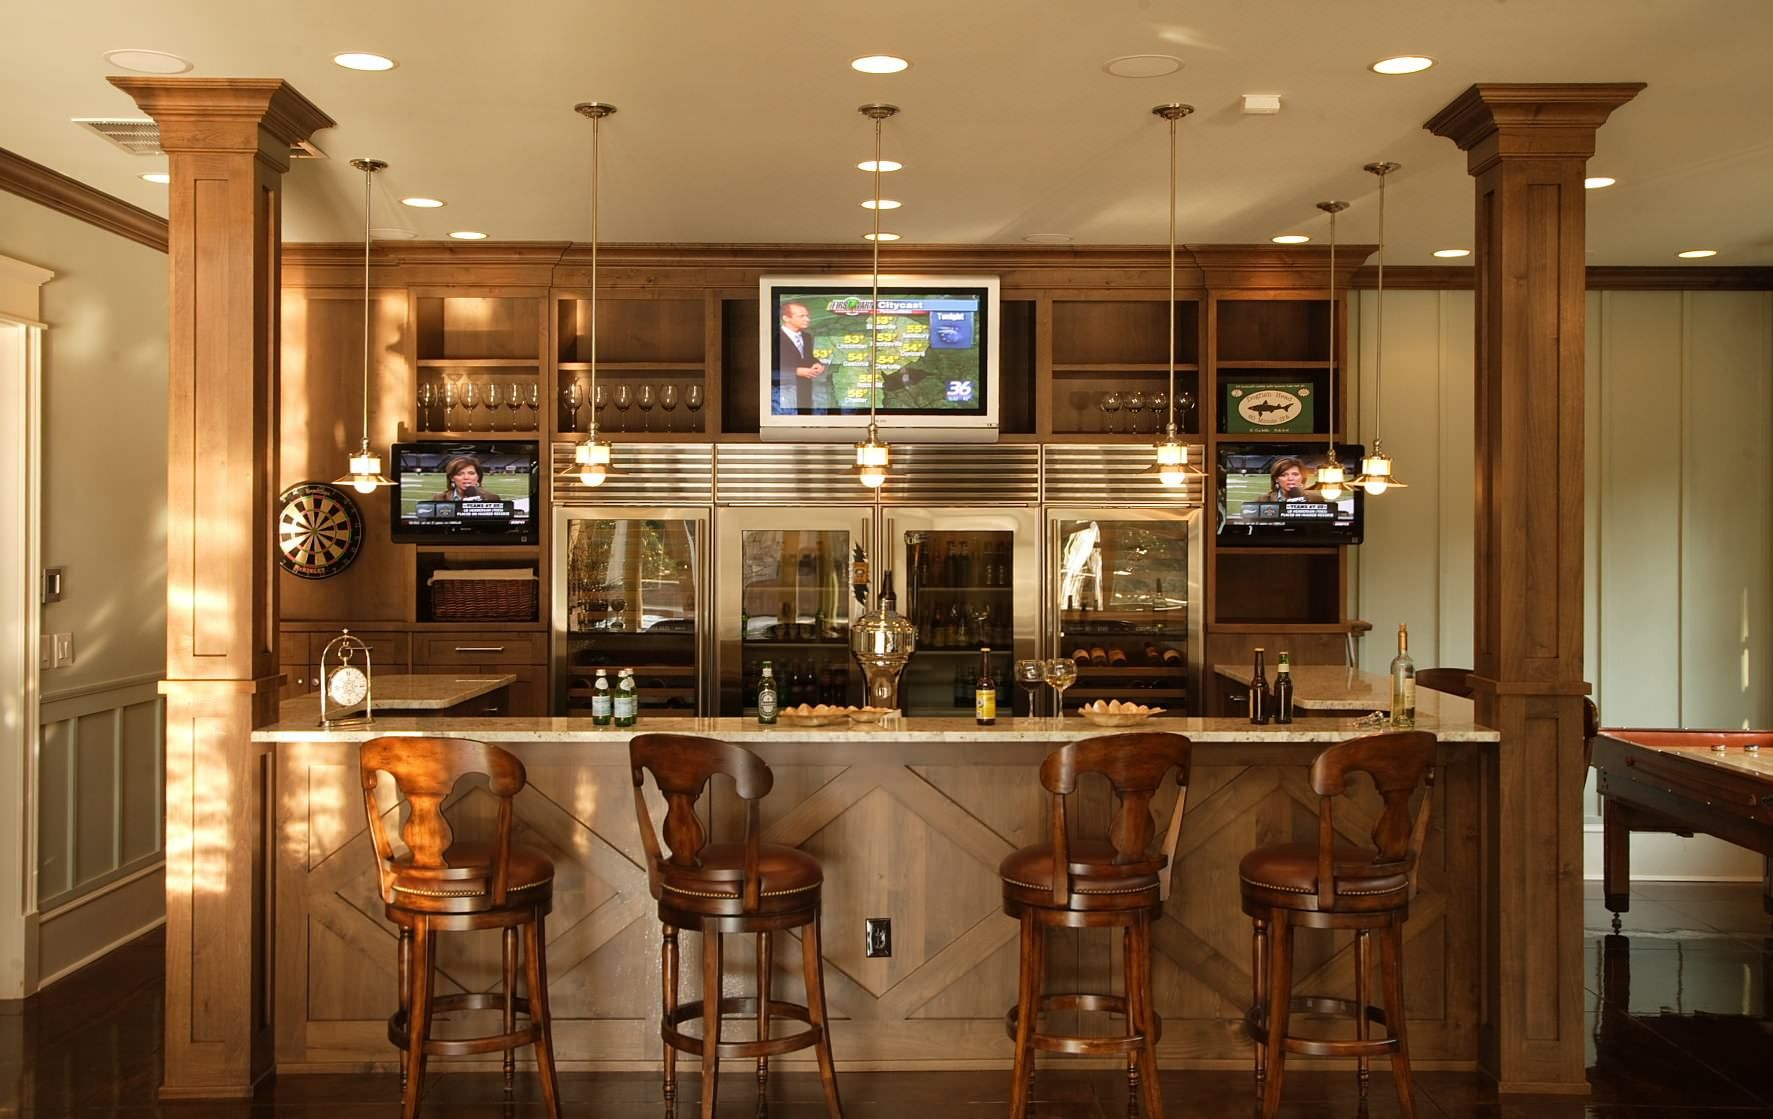 basement bar lighting ideas. Wet Bar Lighting. Basement Ideas For Small Spaces With Lighting H